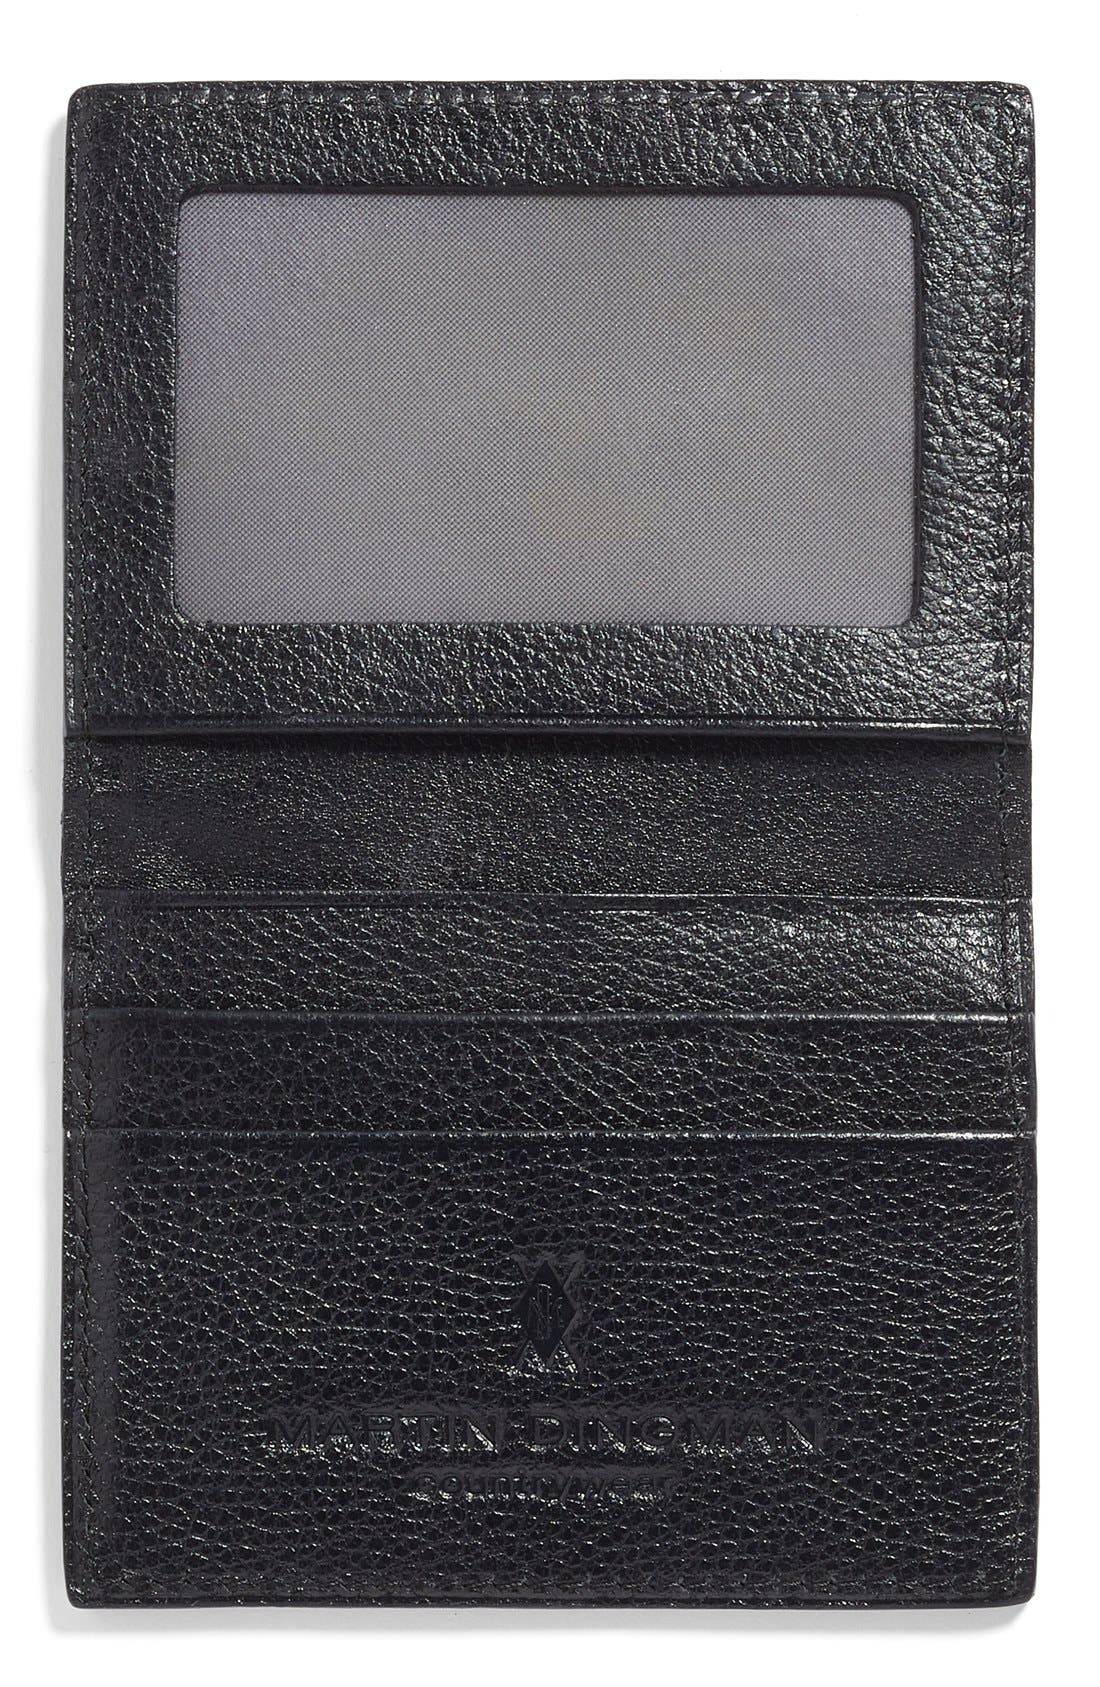 Leather ID Wallet,                             Alternate thumbnail 2, color,                             001